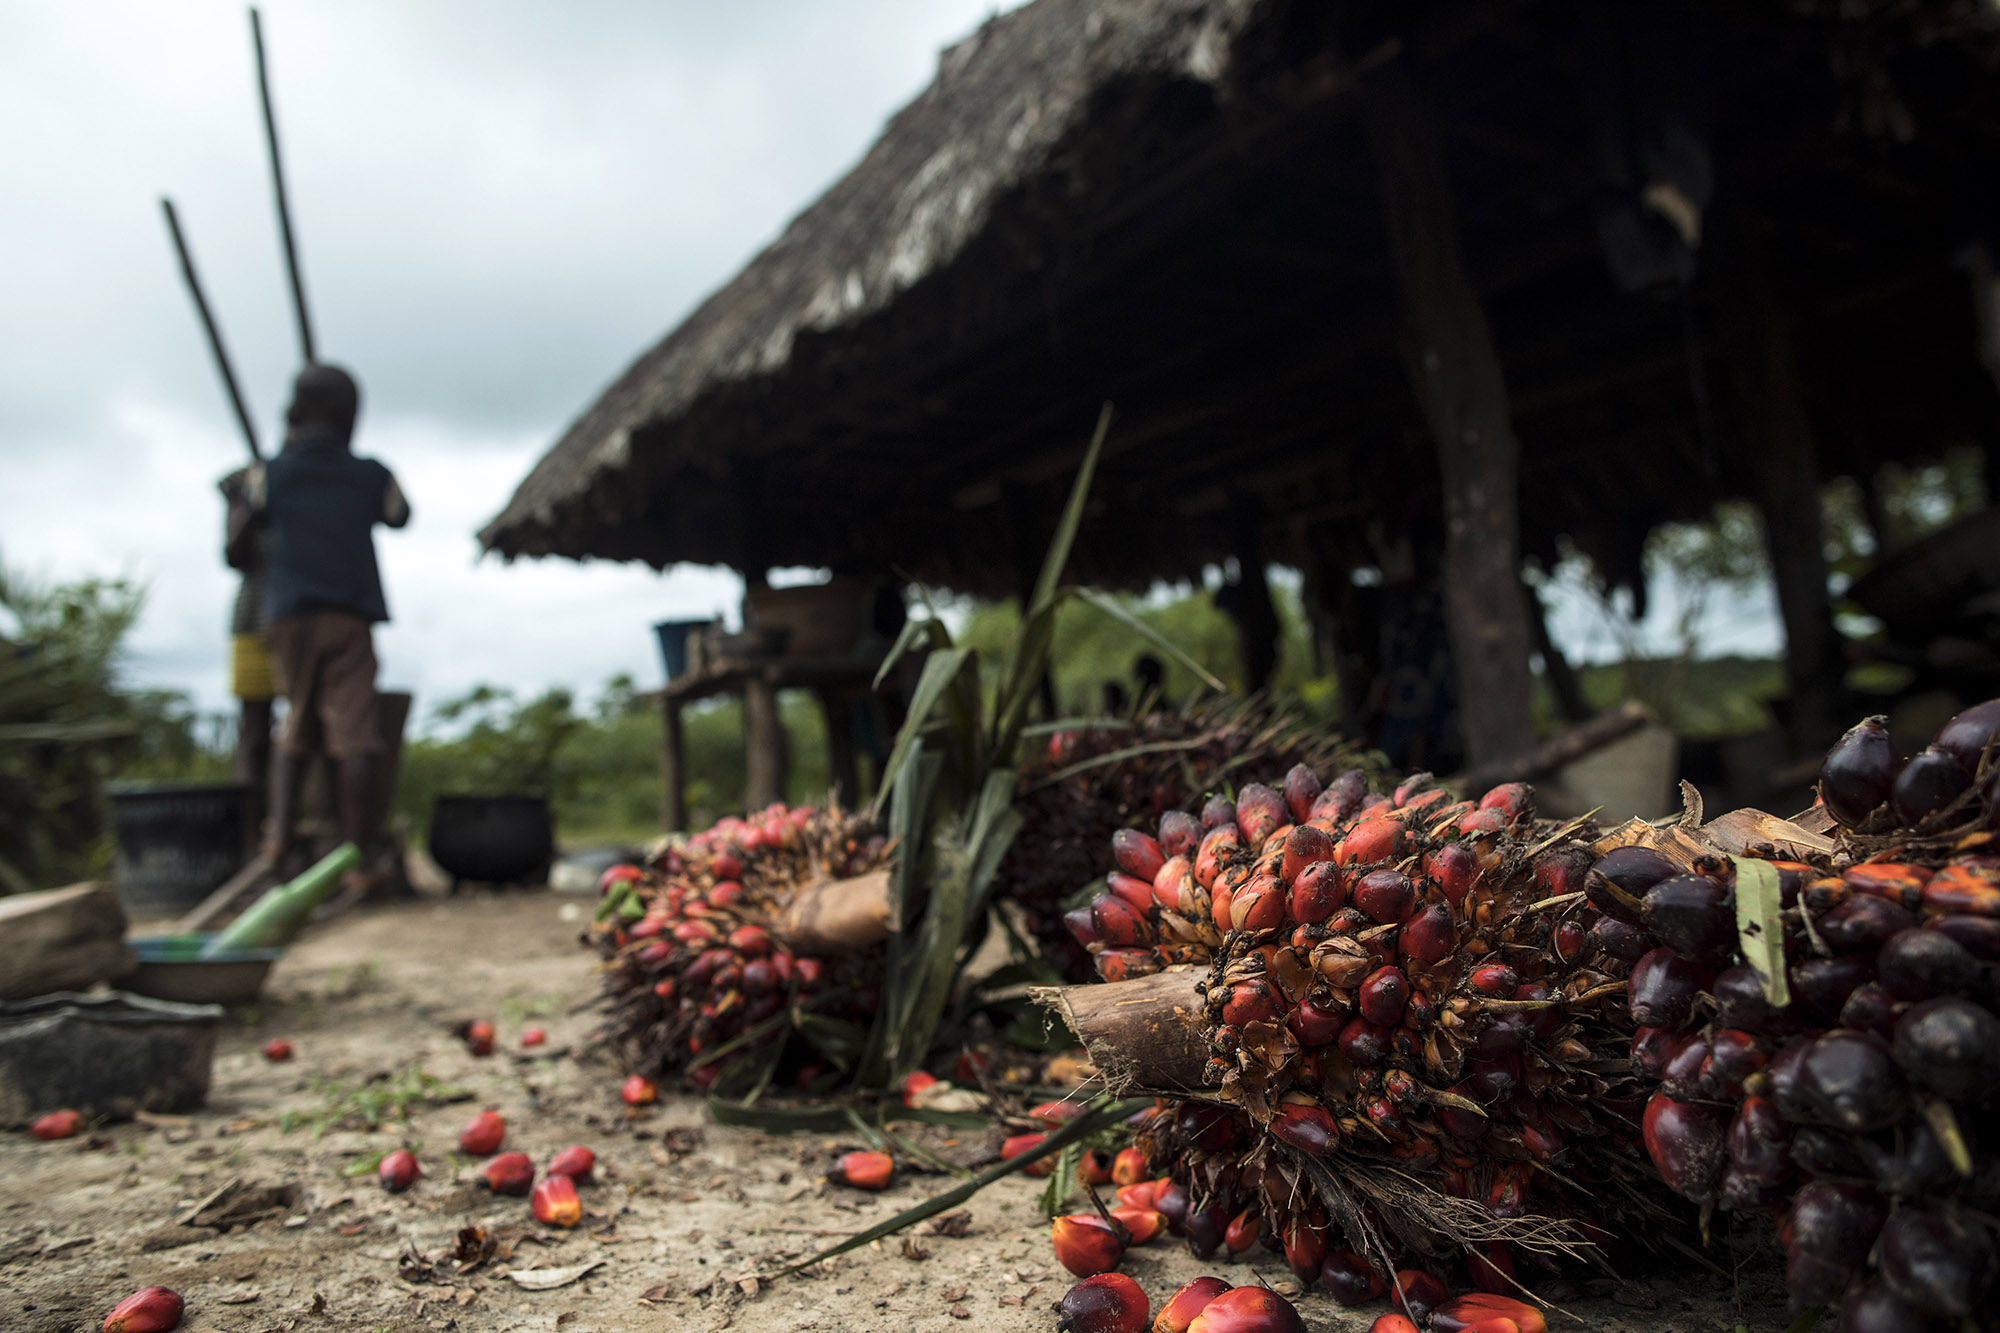 Fruits from palm trees lie in front of Garmondah Banwon's kitchen in Blayah Town. Banwon is an elder in the the Jogbahn Clan. The Jogbahn Clan fought against the British-owned company Equatorial Palm Oil (EPO) when they tried to take over their land in 2013. The people in the community depend on the land for their livelihoods. The Sustainable Development Institute (SDI) started to help the community by submitting a formal complaint to the to the Roundtable on Sustainable Palm Oil (RSPO). SDI taught the clan about land rights and resisting with non-violence. THE RSPO determined that the land EPO was using belonged to the clan. SGI trained the community how to map their land and boundaries were created that EPO accepted not to cross.Photo by Sarah Grile.